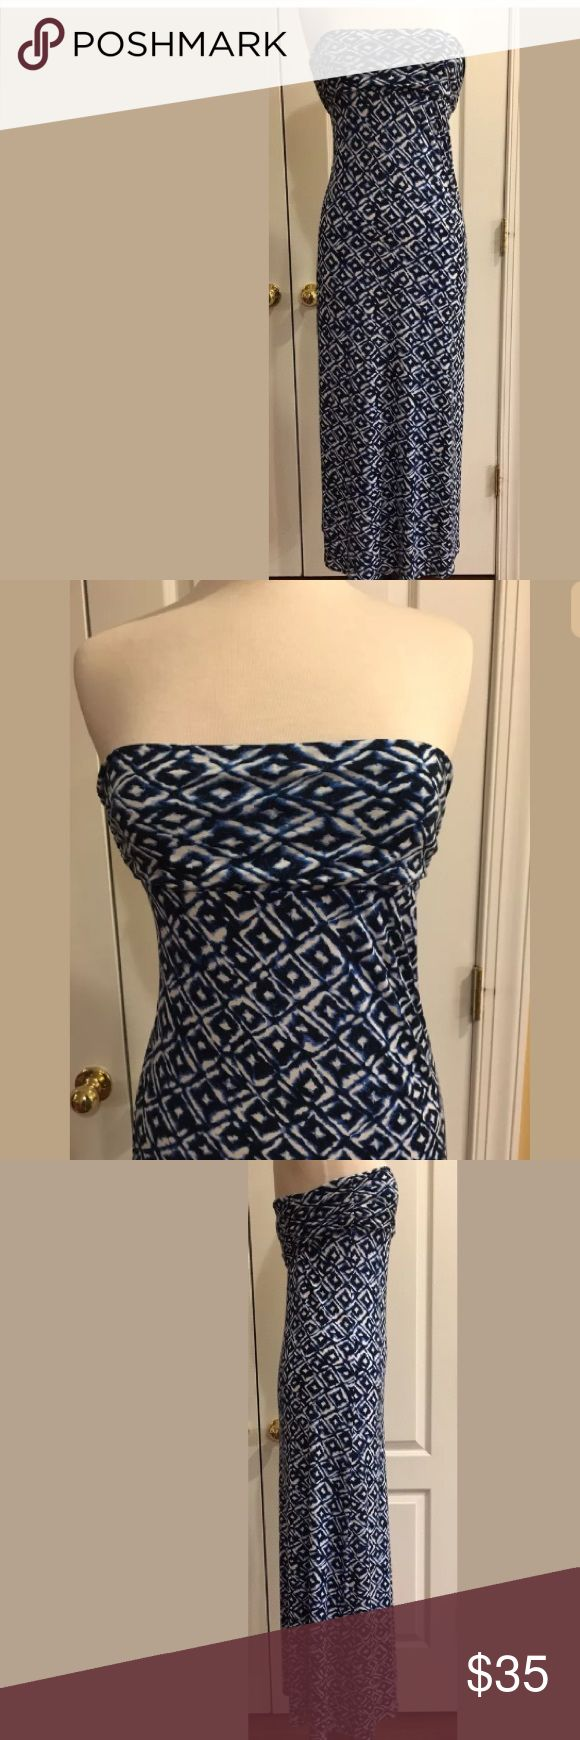 Laundry By Shelli Segal Long Dress Size Small Beautiful long summer dress in excellent condition, free of any flaws. This dress is perfect for summer! Laundry by Shelli Segal Dresses Strapless